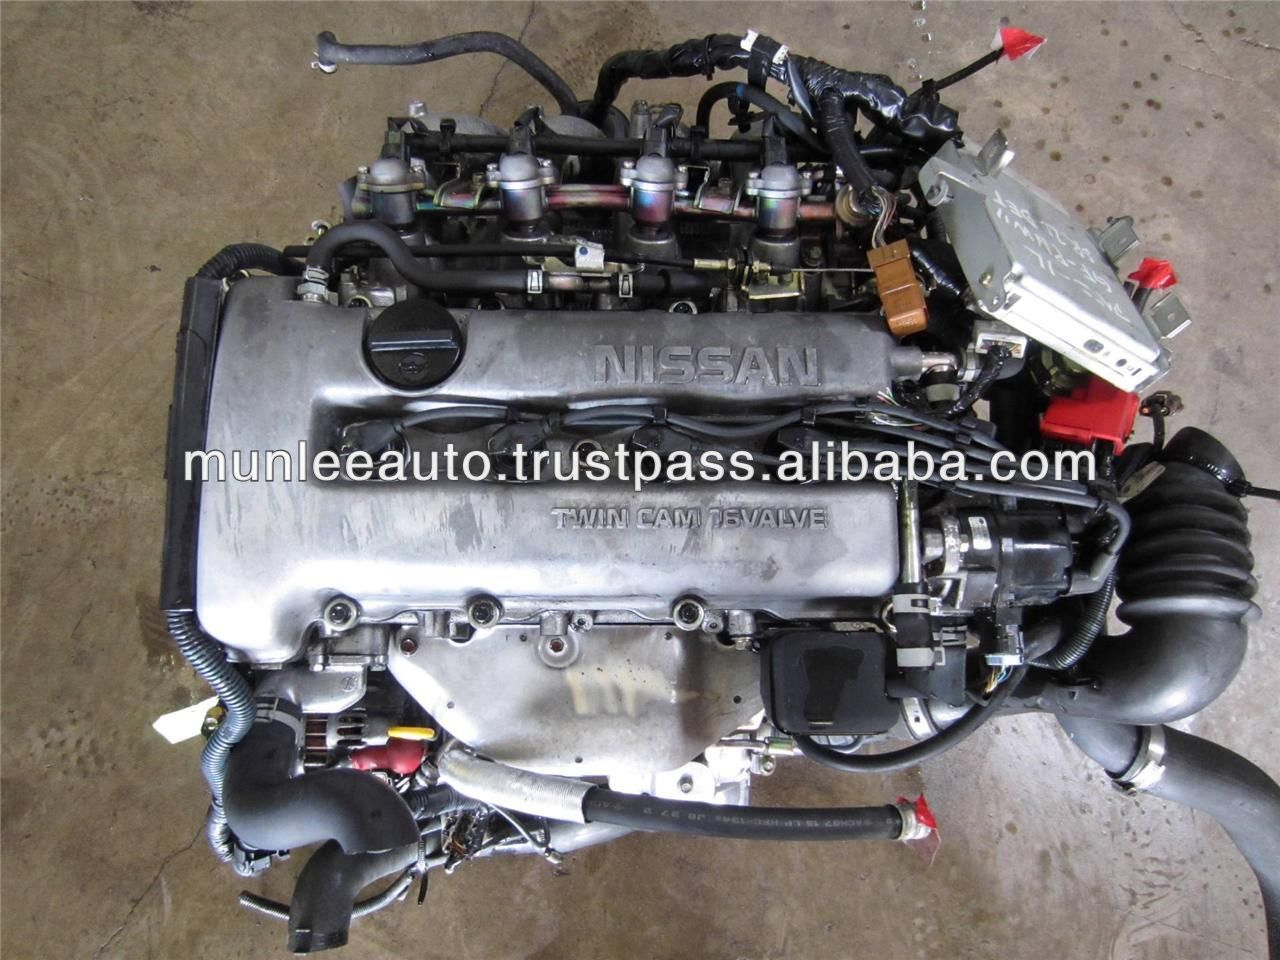 JDM USED ENGINE for vehicle SR20DET NISSAN AVENIR GT SENTRA B13 200SX INFINITI G20 SR20 TURBO FWD